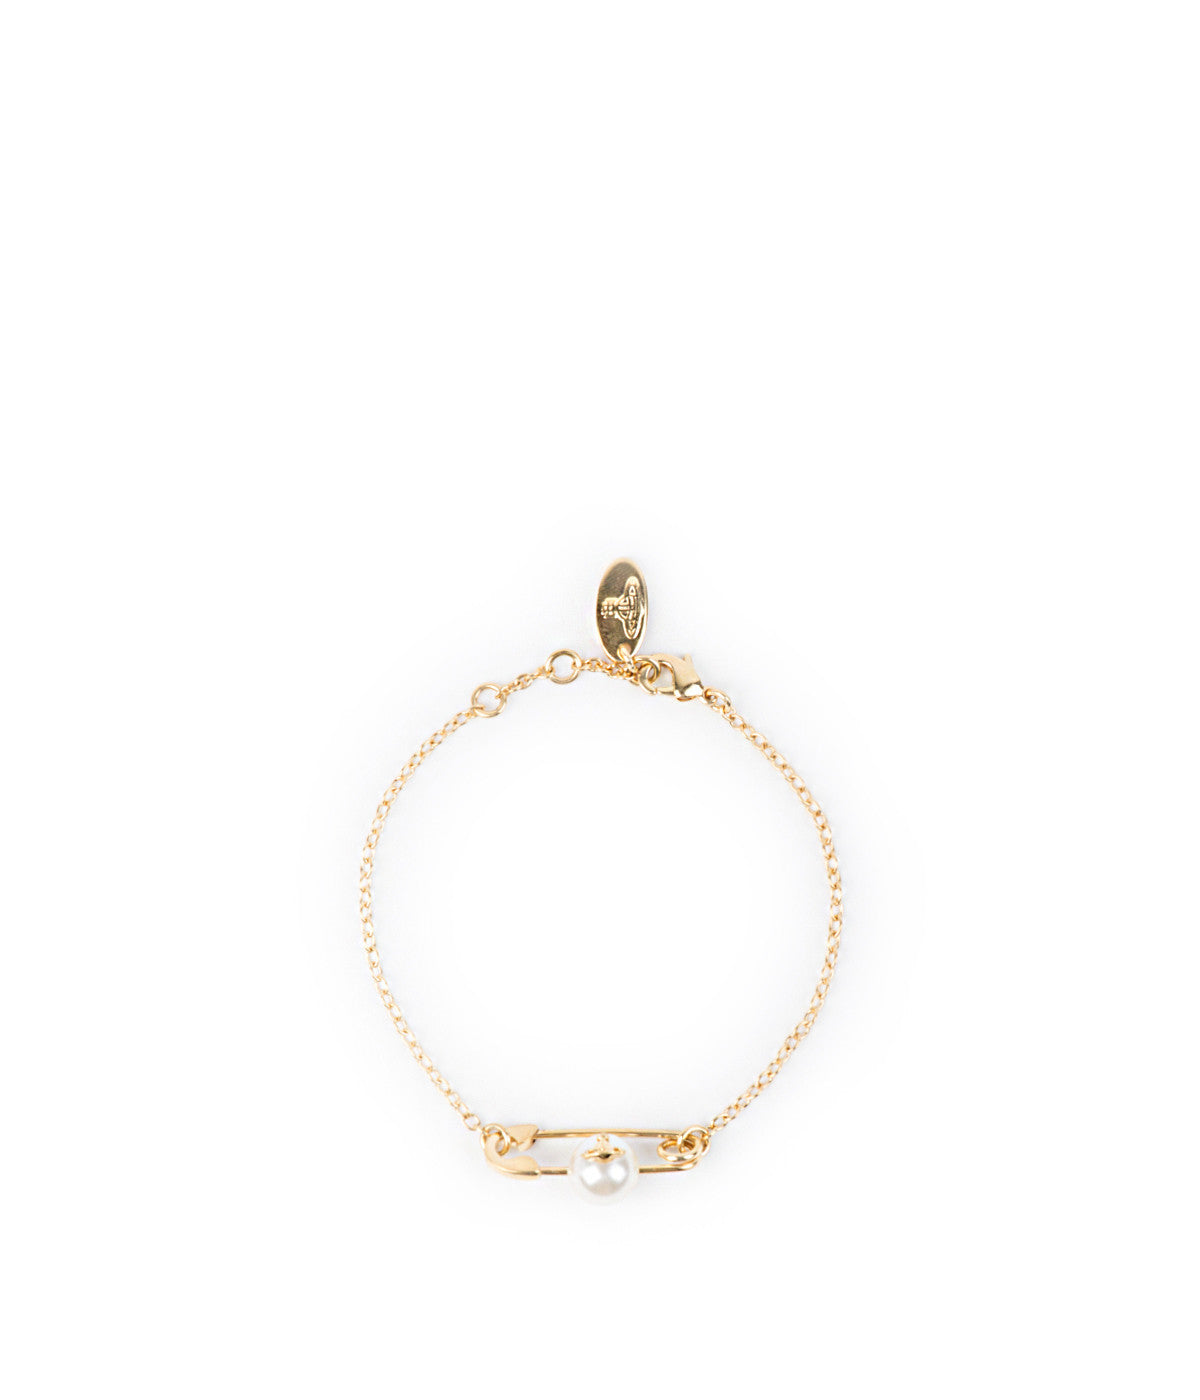 Yellow Gold Safety Pin Chain Bracelet